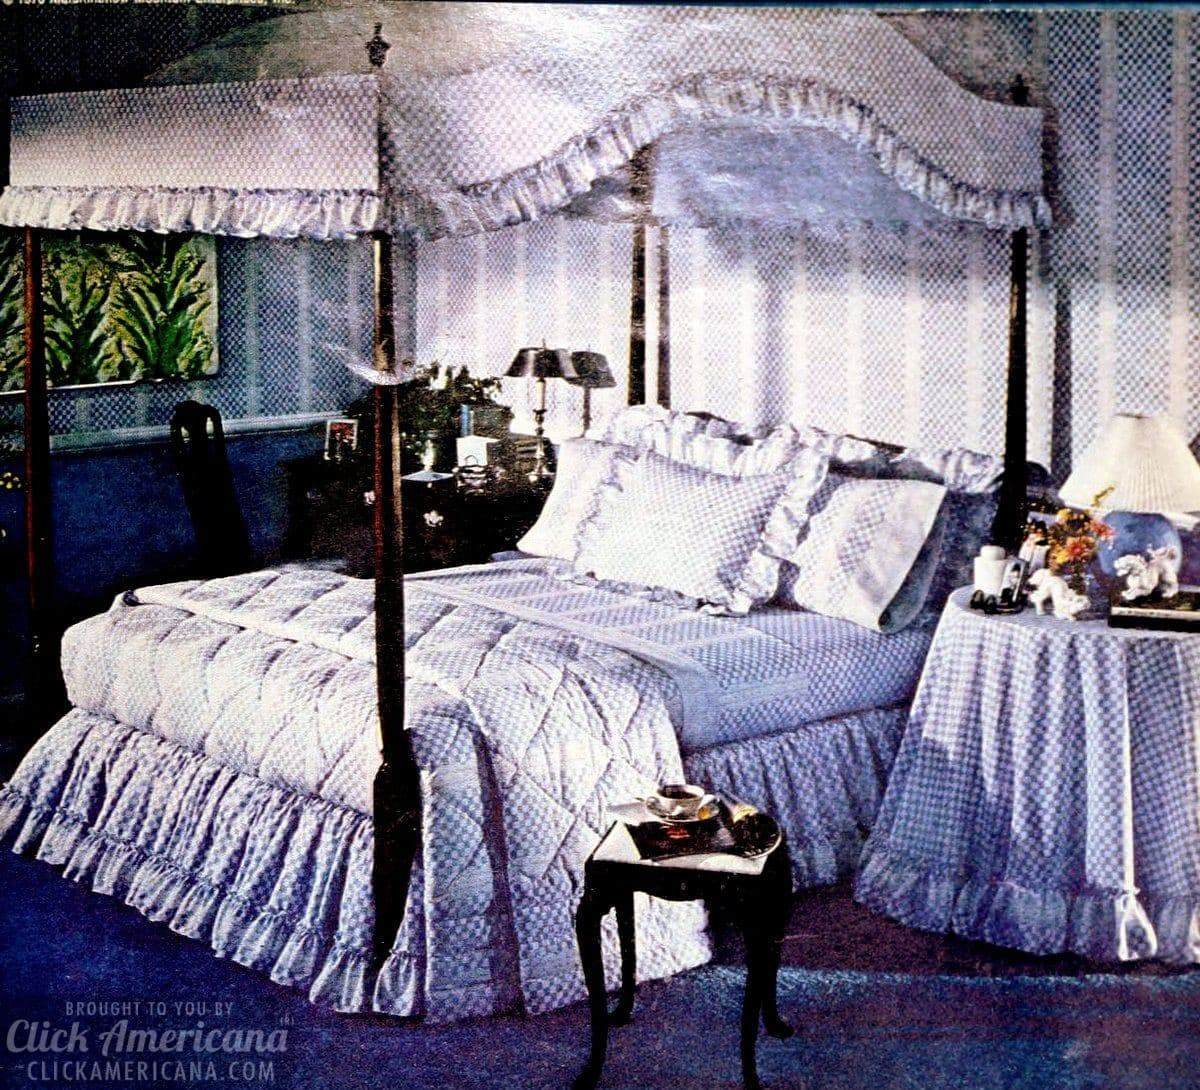 Classic canopy beds from the 70s